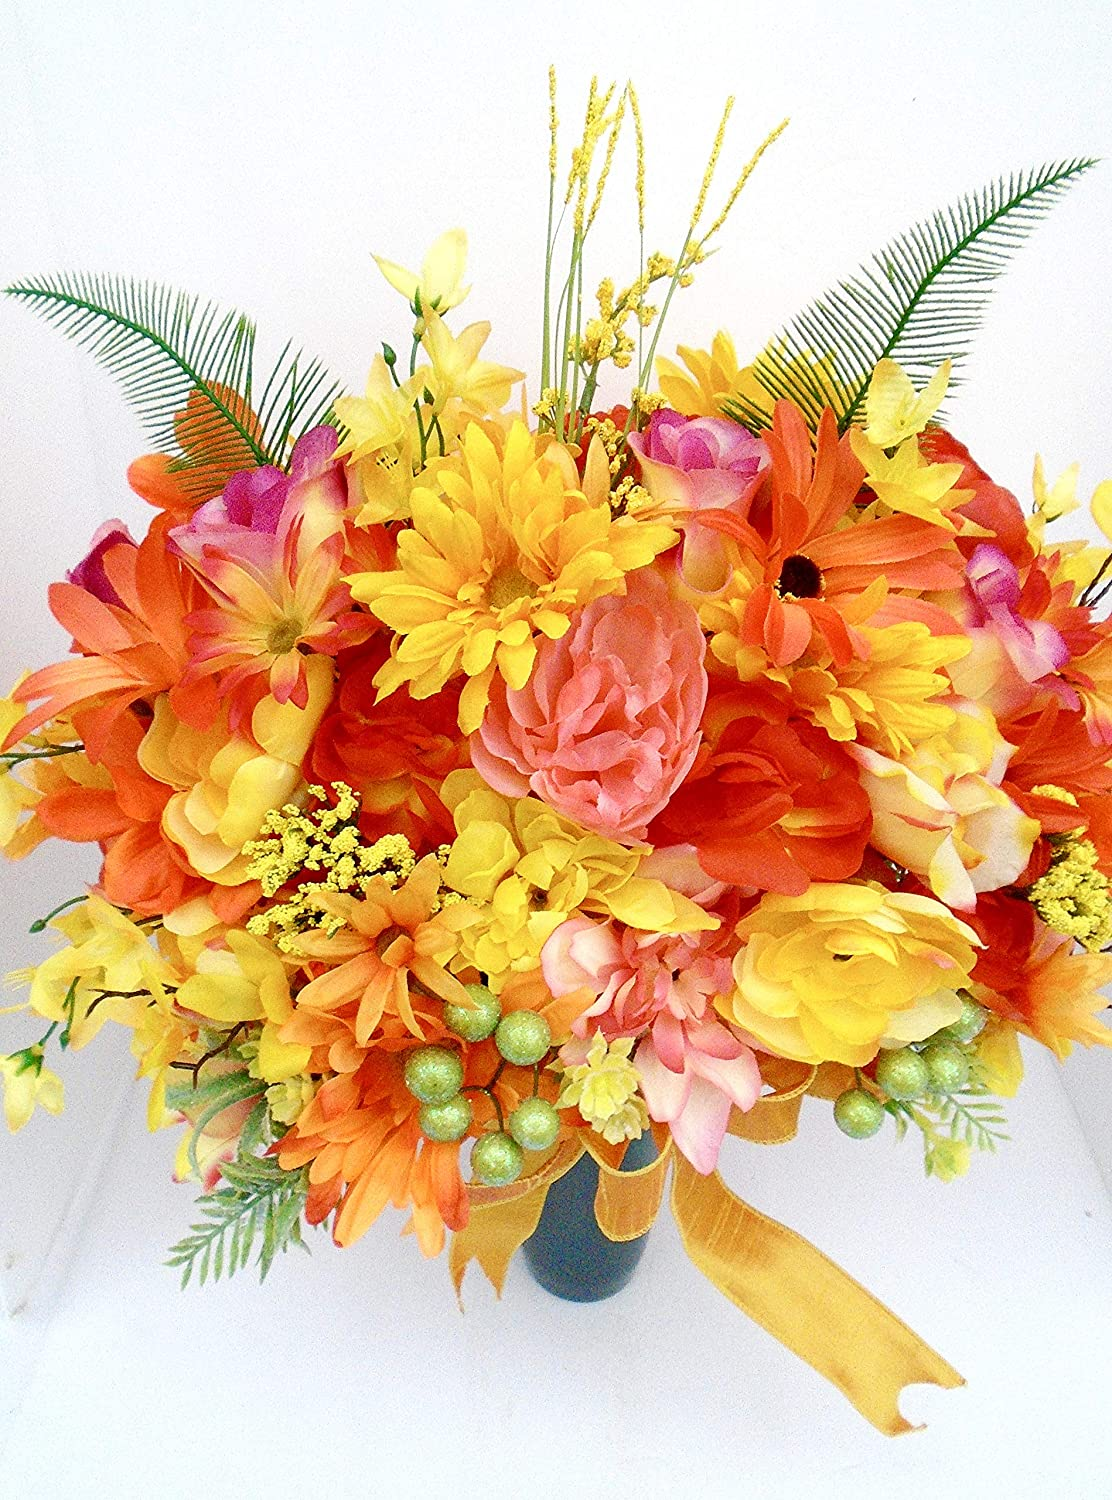 Amazing Cemetery Cone Deluxe Max 69% OFF featuring Yellow Orange Blooms and